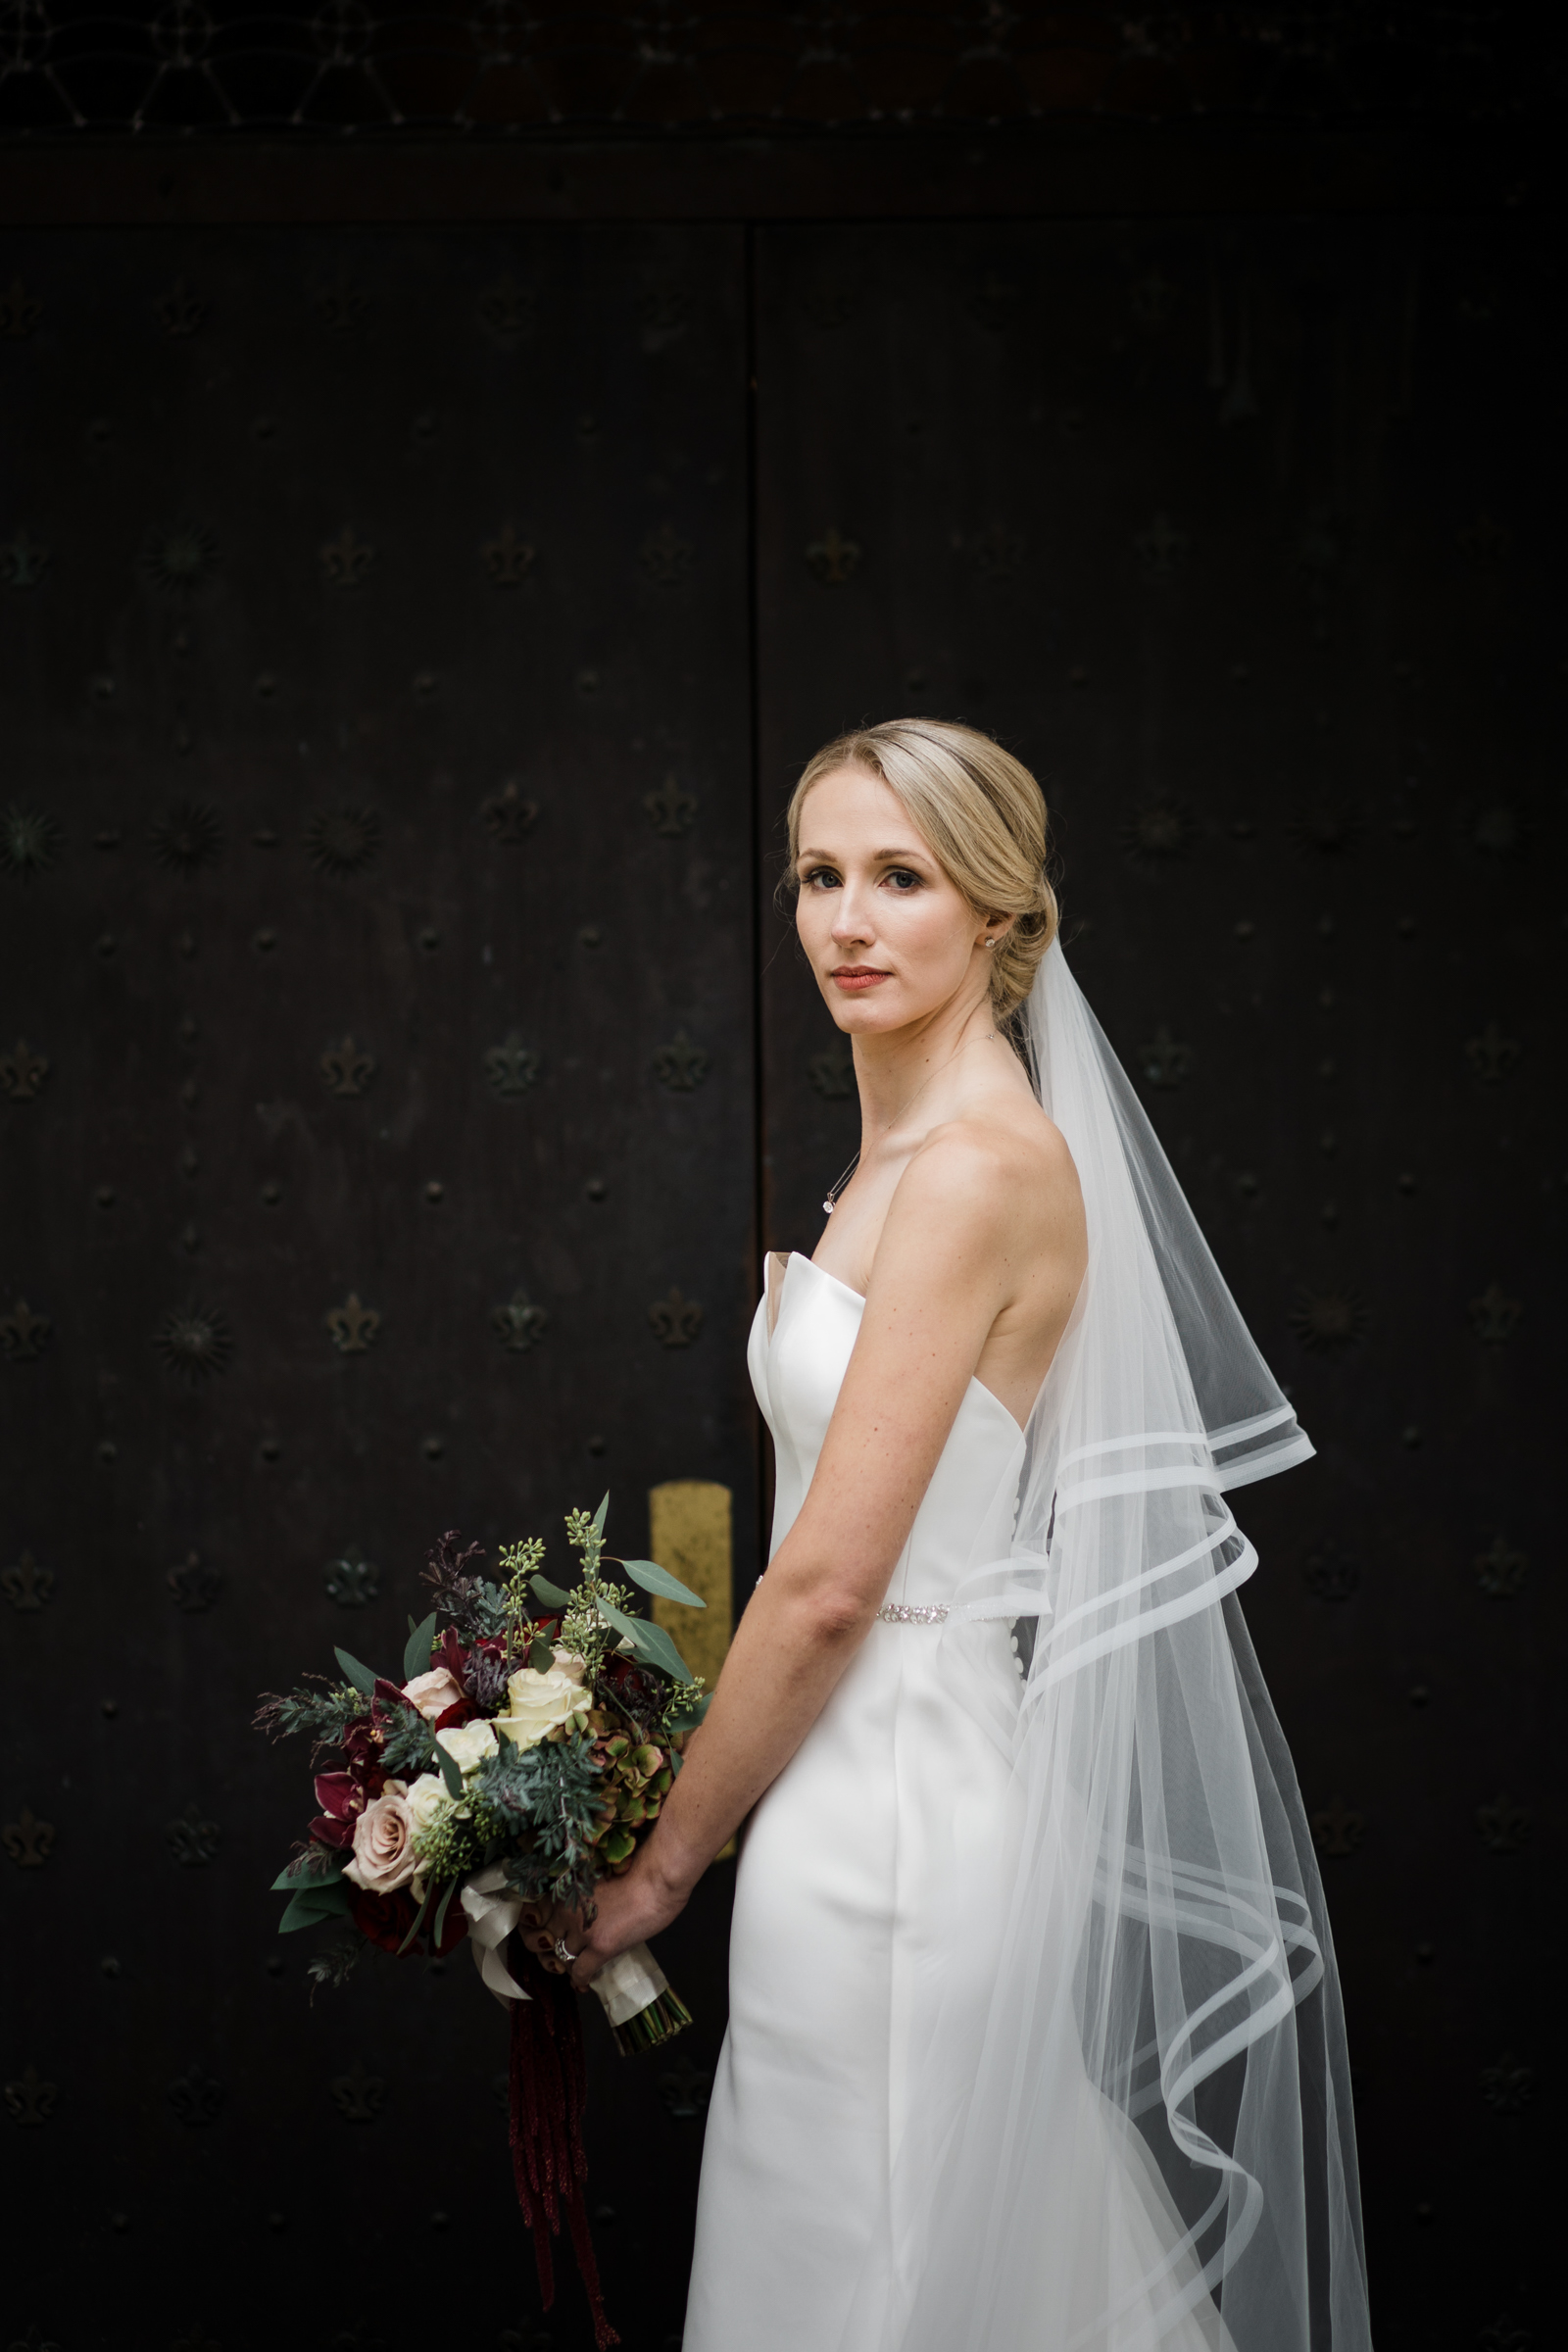 Bride in silk strapless gown and long veil - photo by Stephanie Cristalli Photography